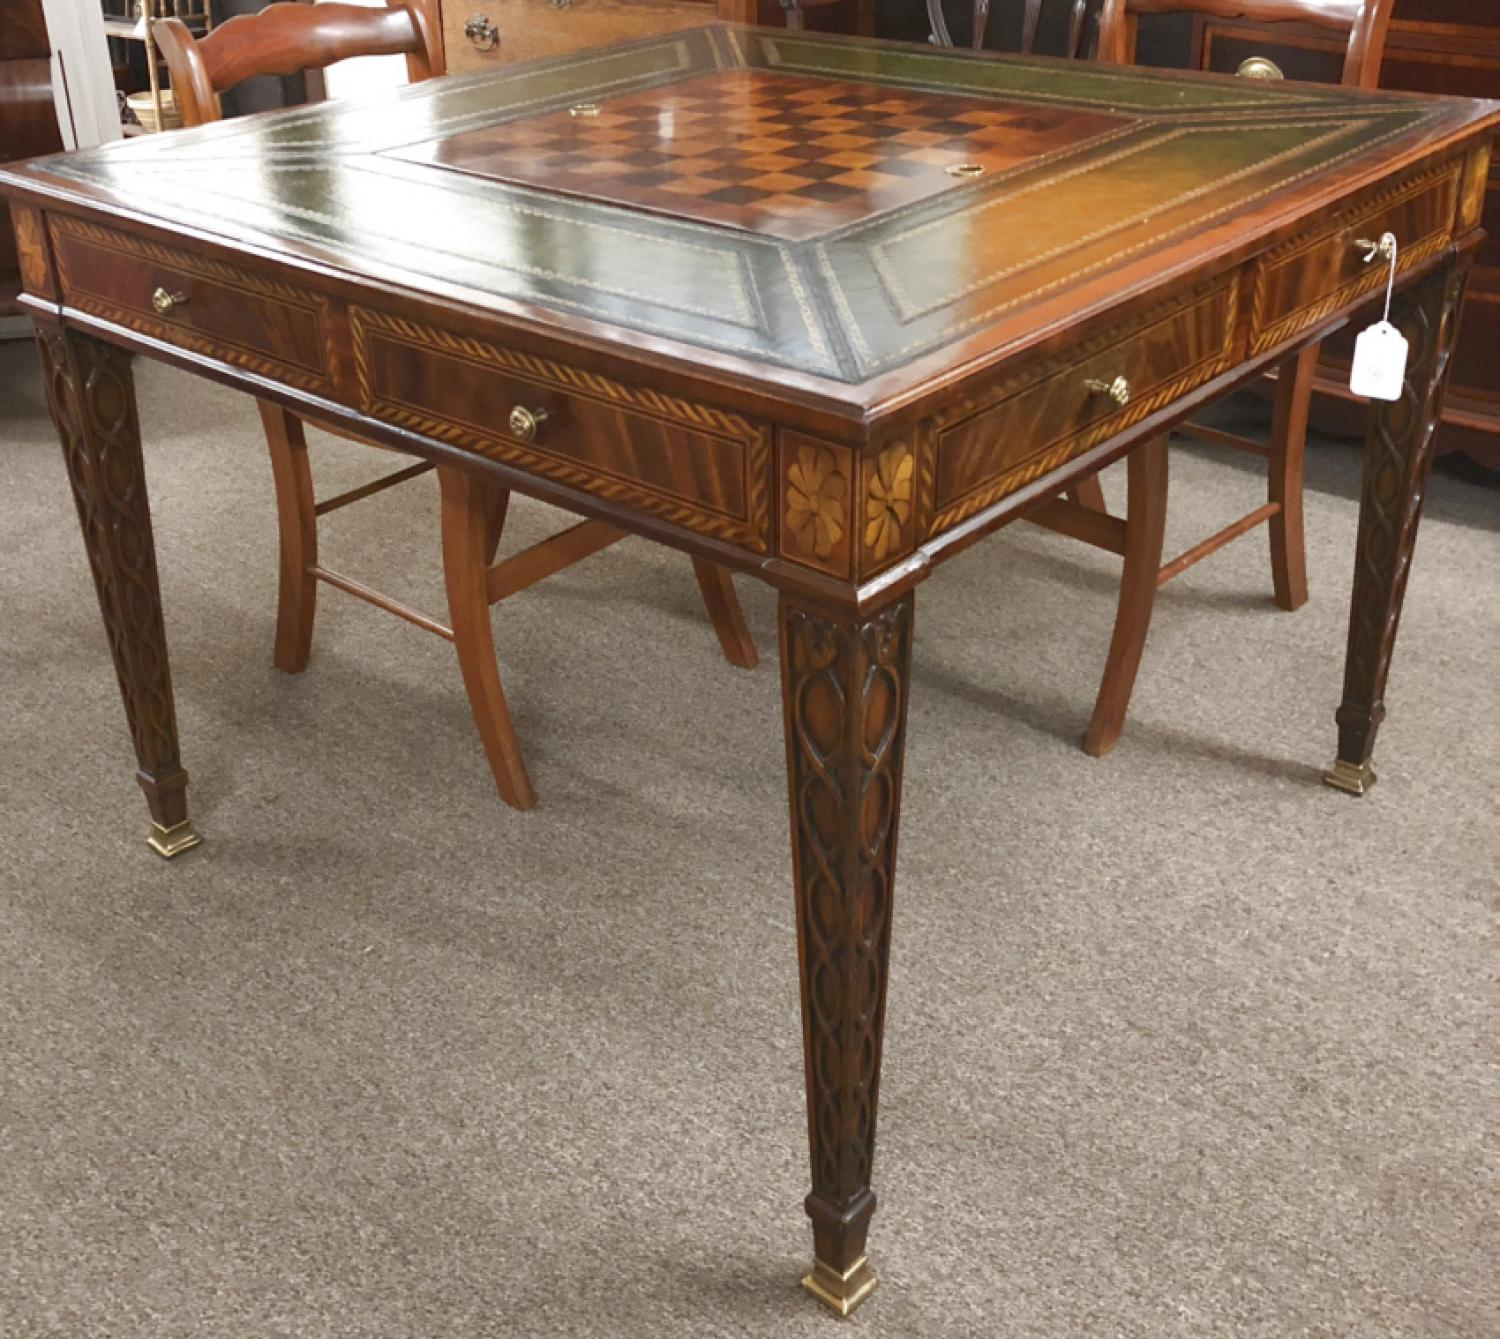 Vintage Maitland Smith games table